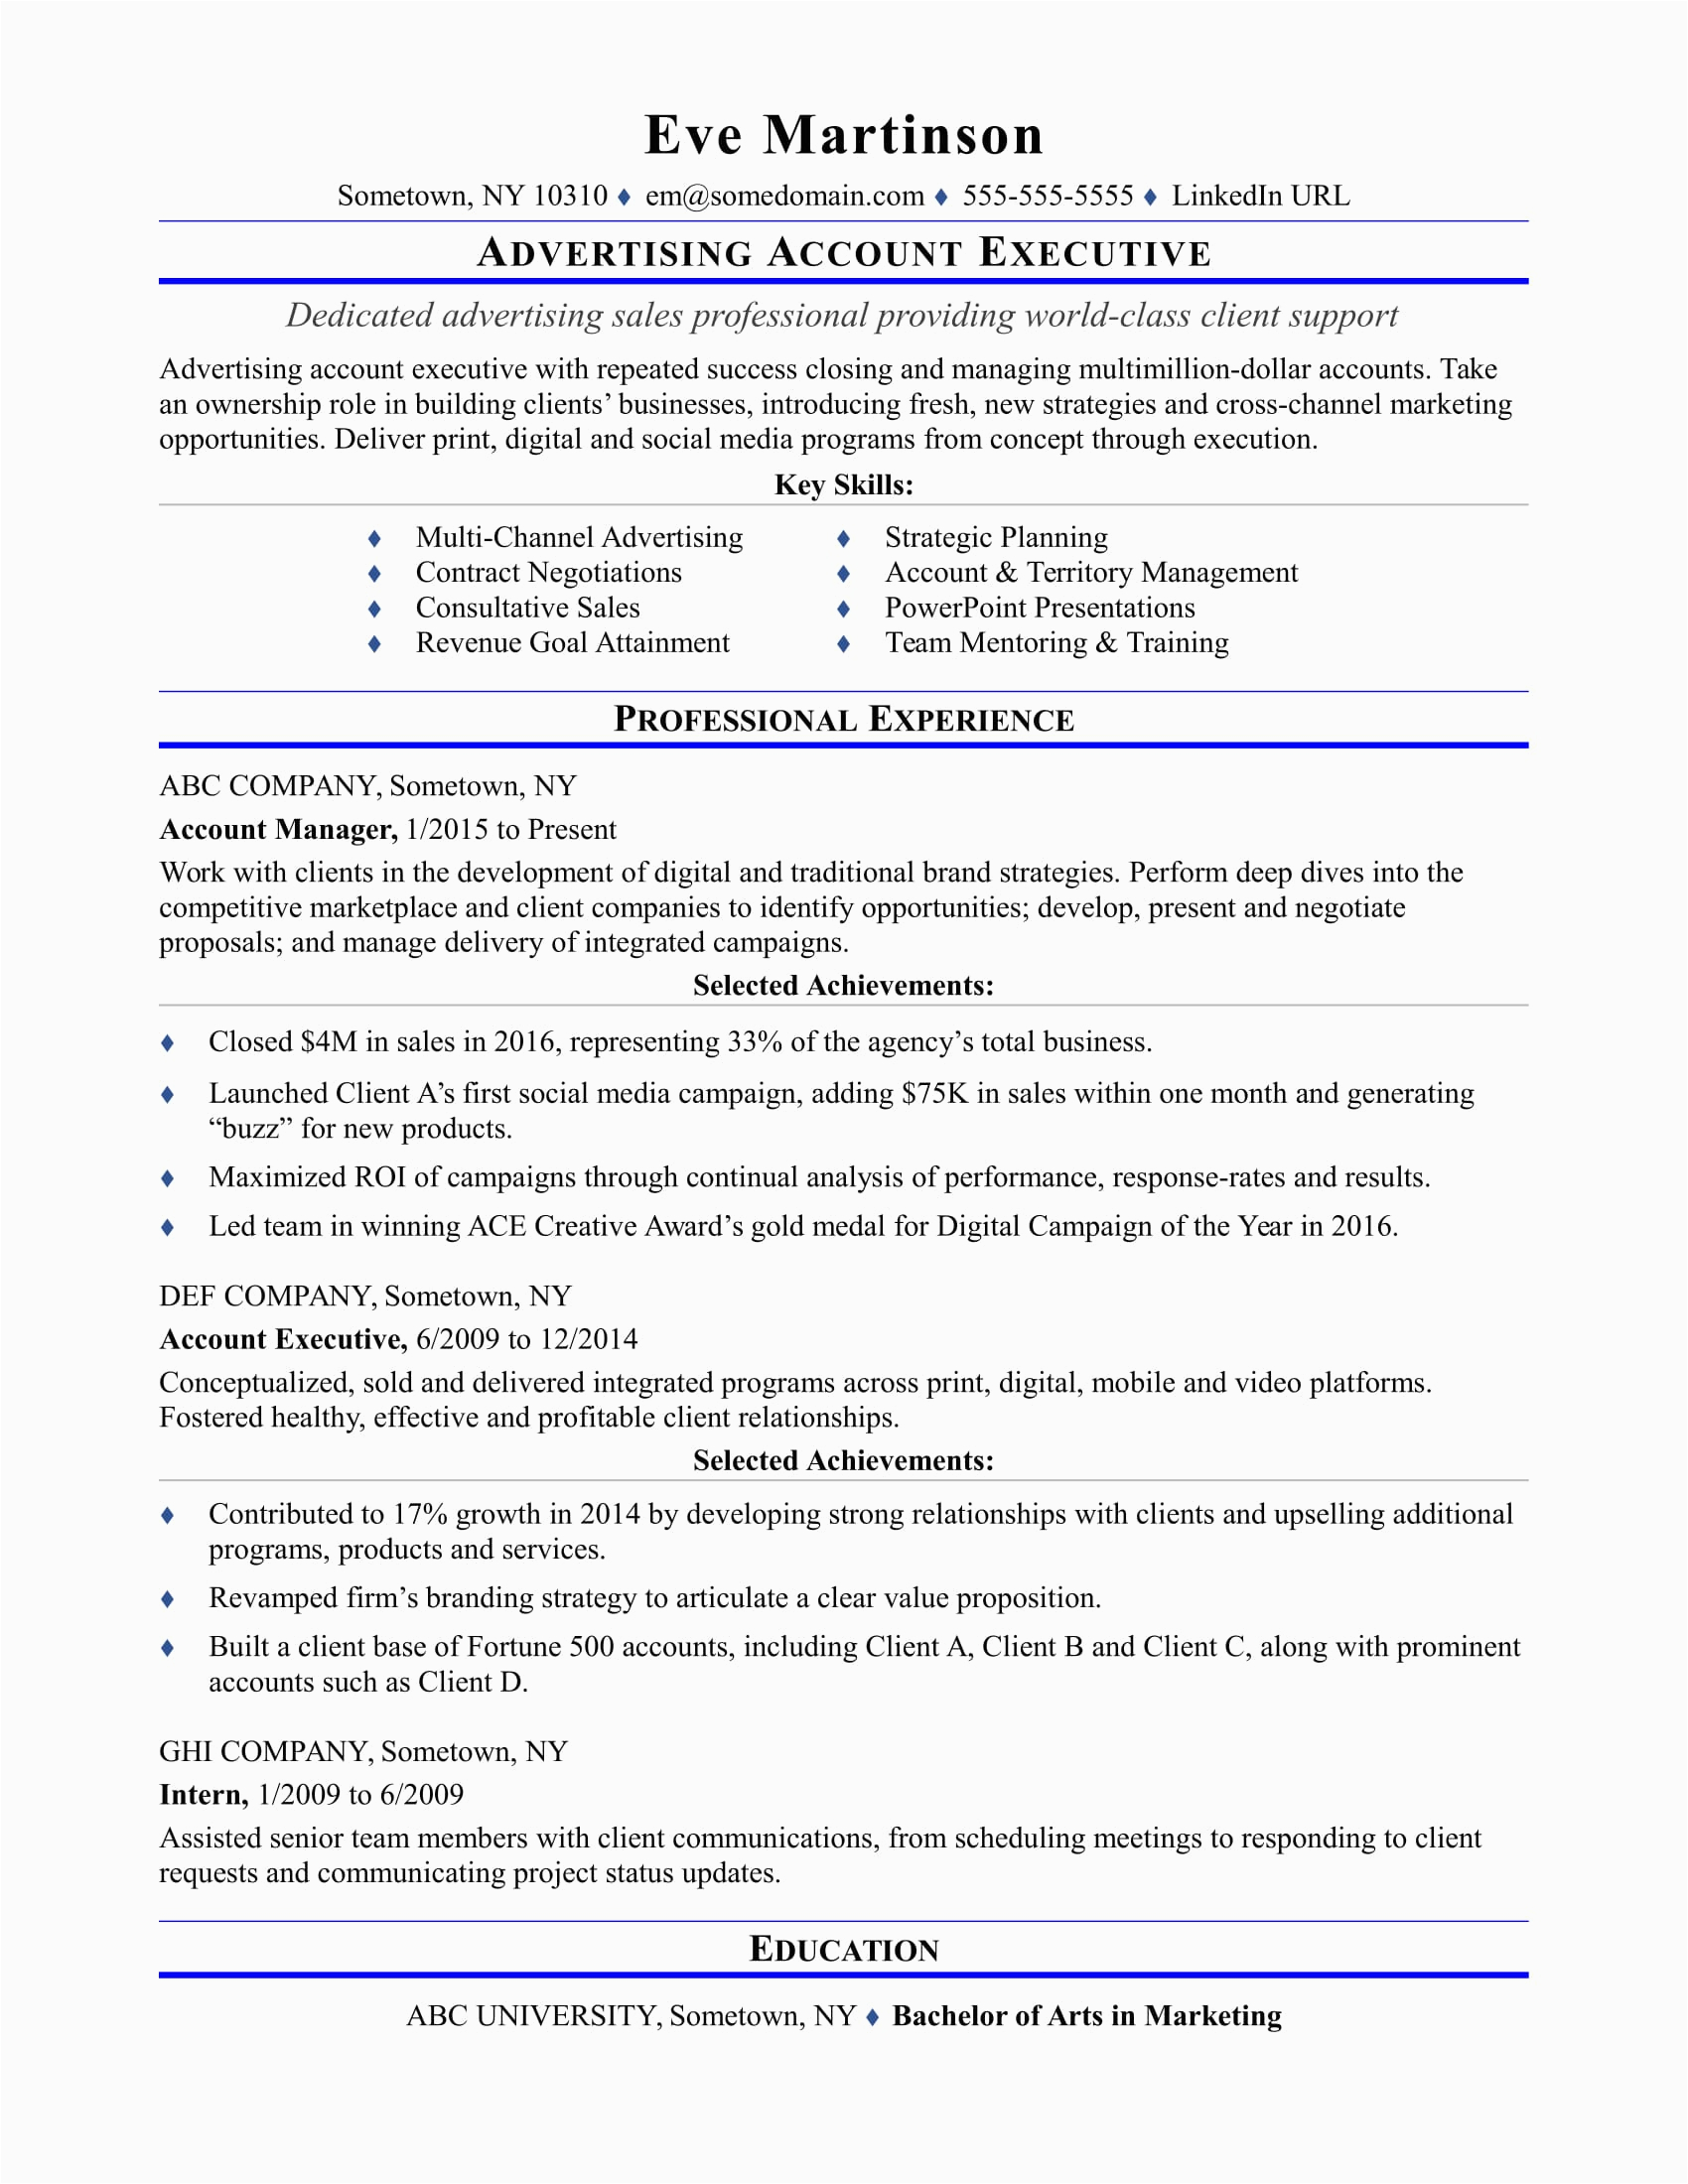 Sample Resume format for Accounts Executive Sample Resume for An Advertising Account Executive